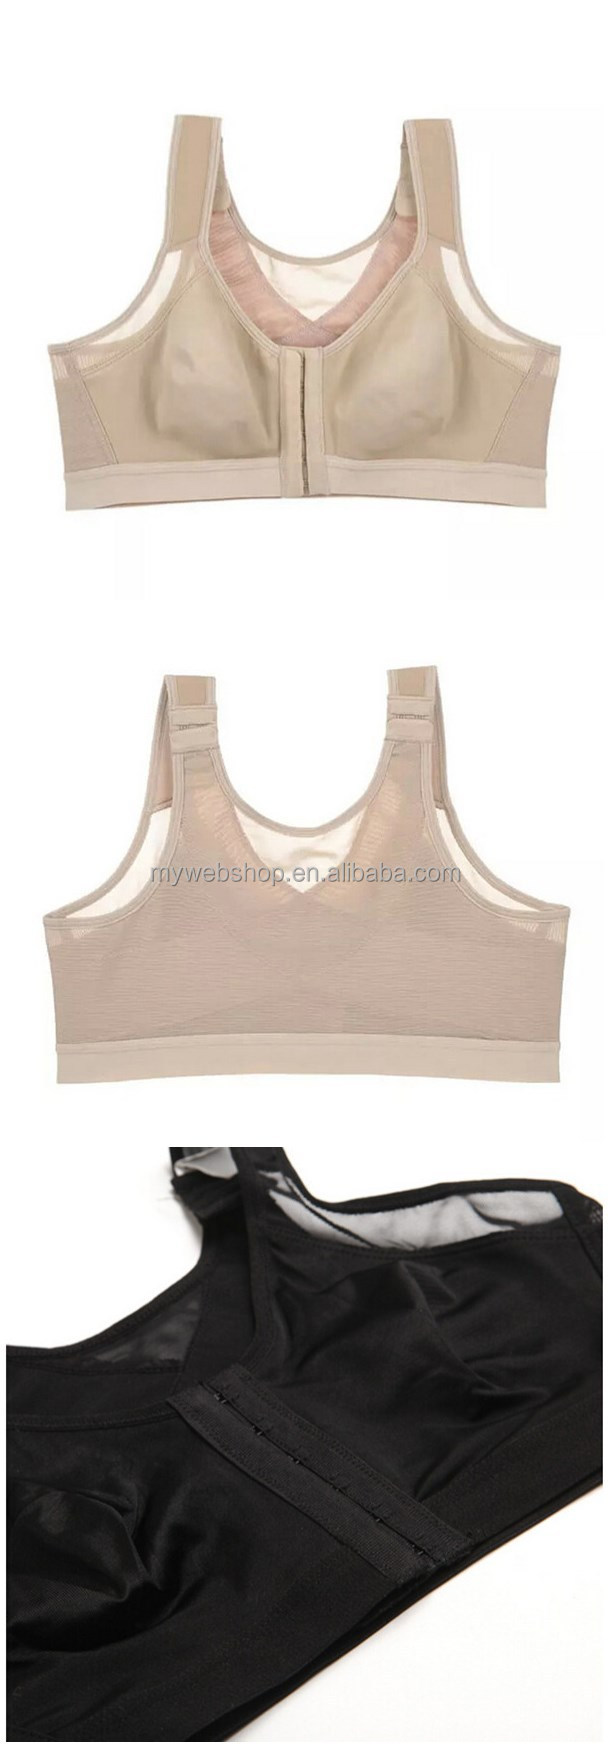 Professional Shockproof Level 3 Women Sports Bra Front Closure and Stable Cross Back Strap Fitness & Yoga Wear